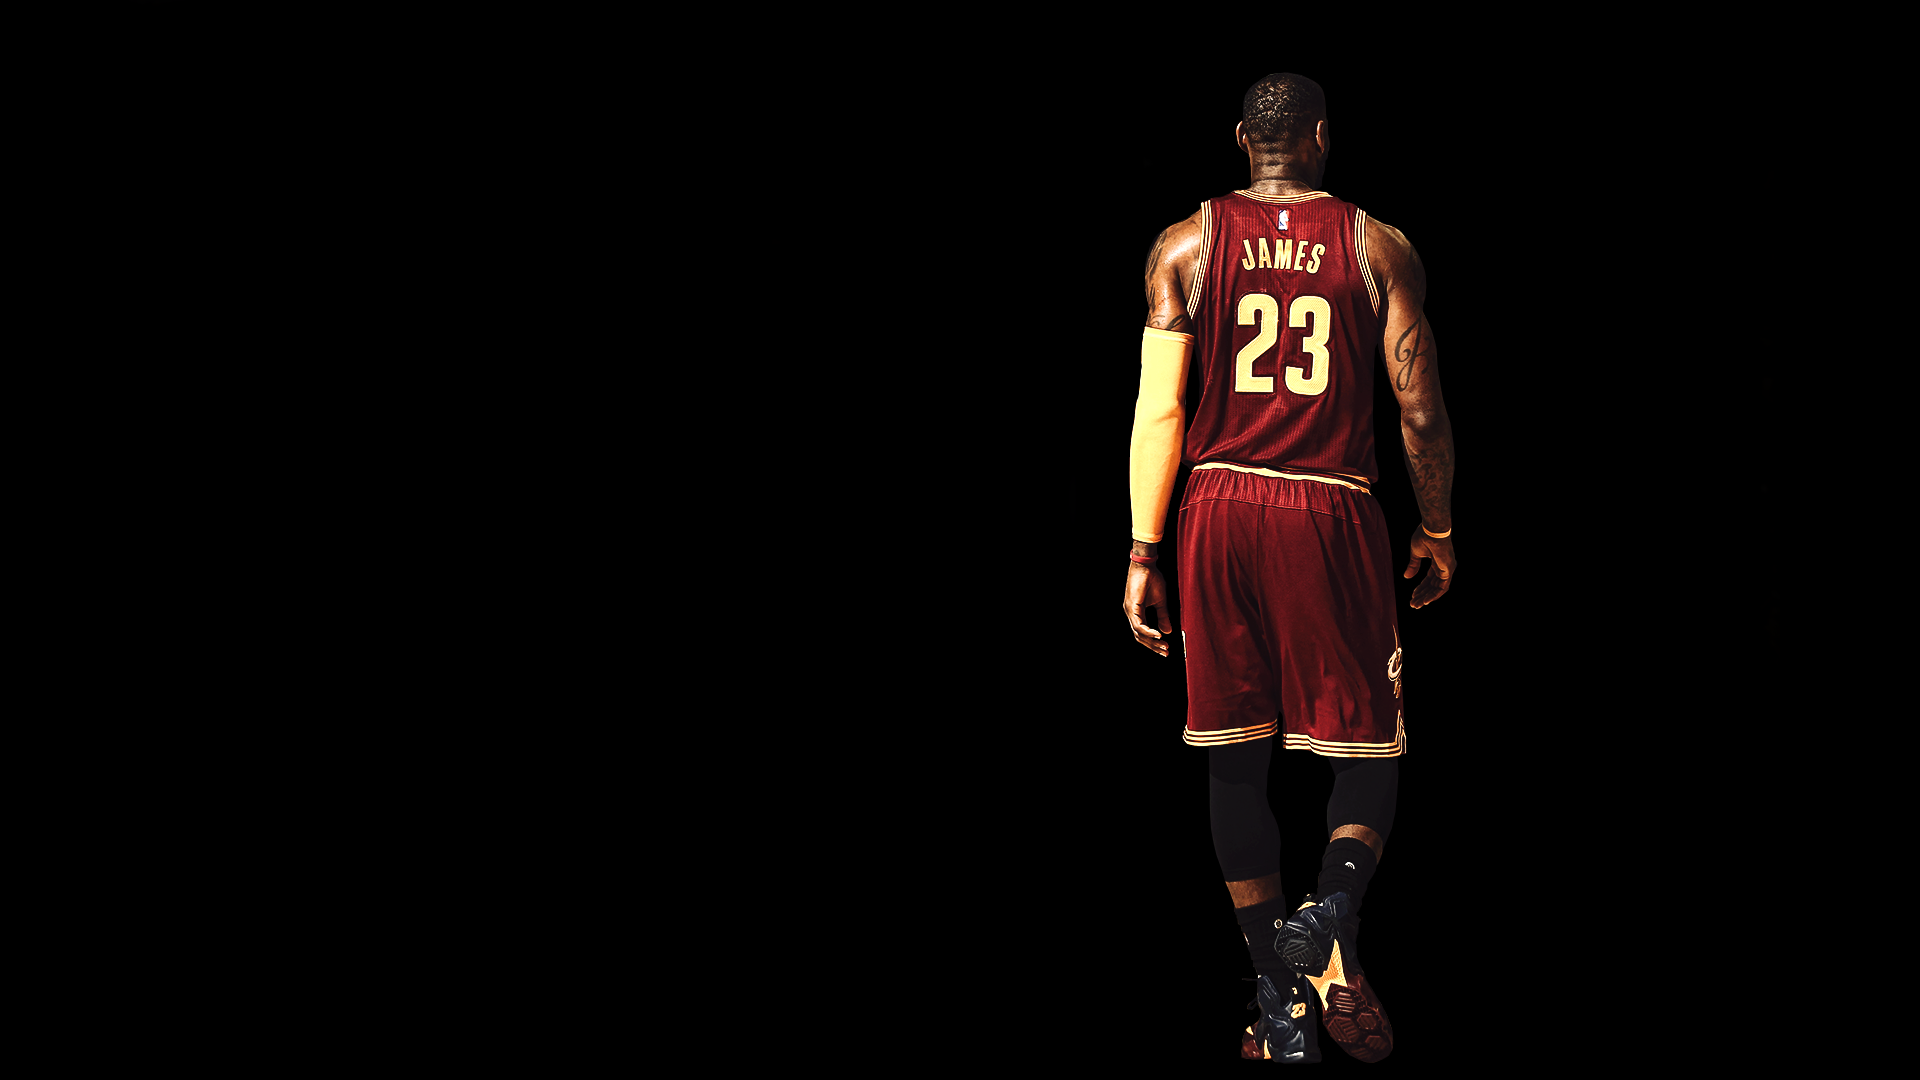 LeBron James Fulfilled Request [1920x1080] Need iPhone